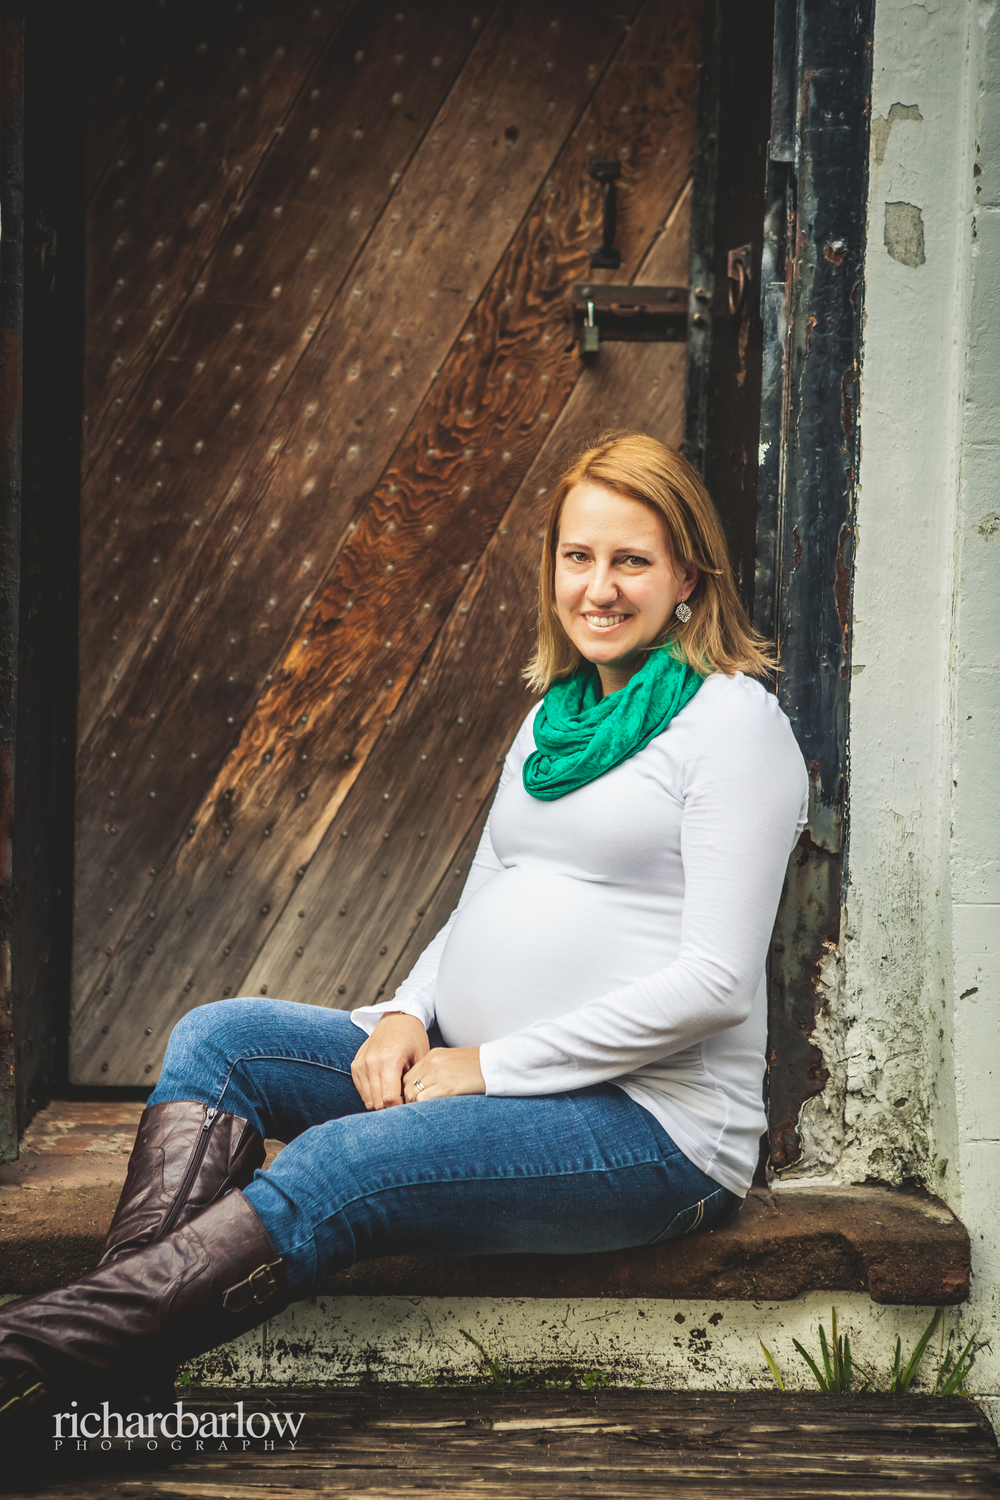 richard barlow photography - Sarah Maternity Session - Beaufort waterfront-4.jpg